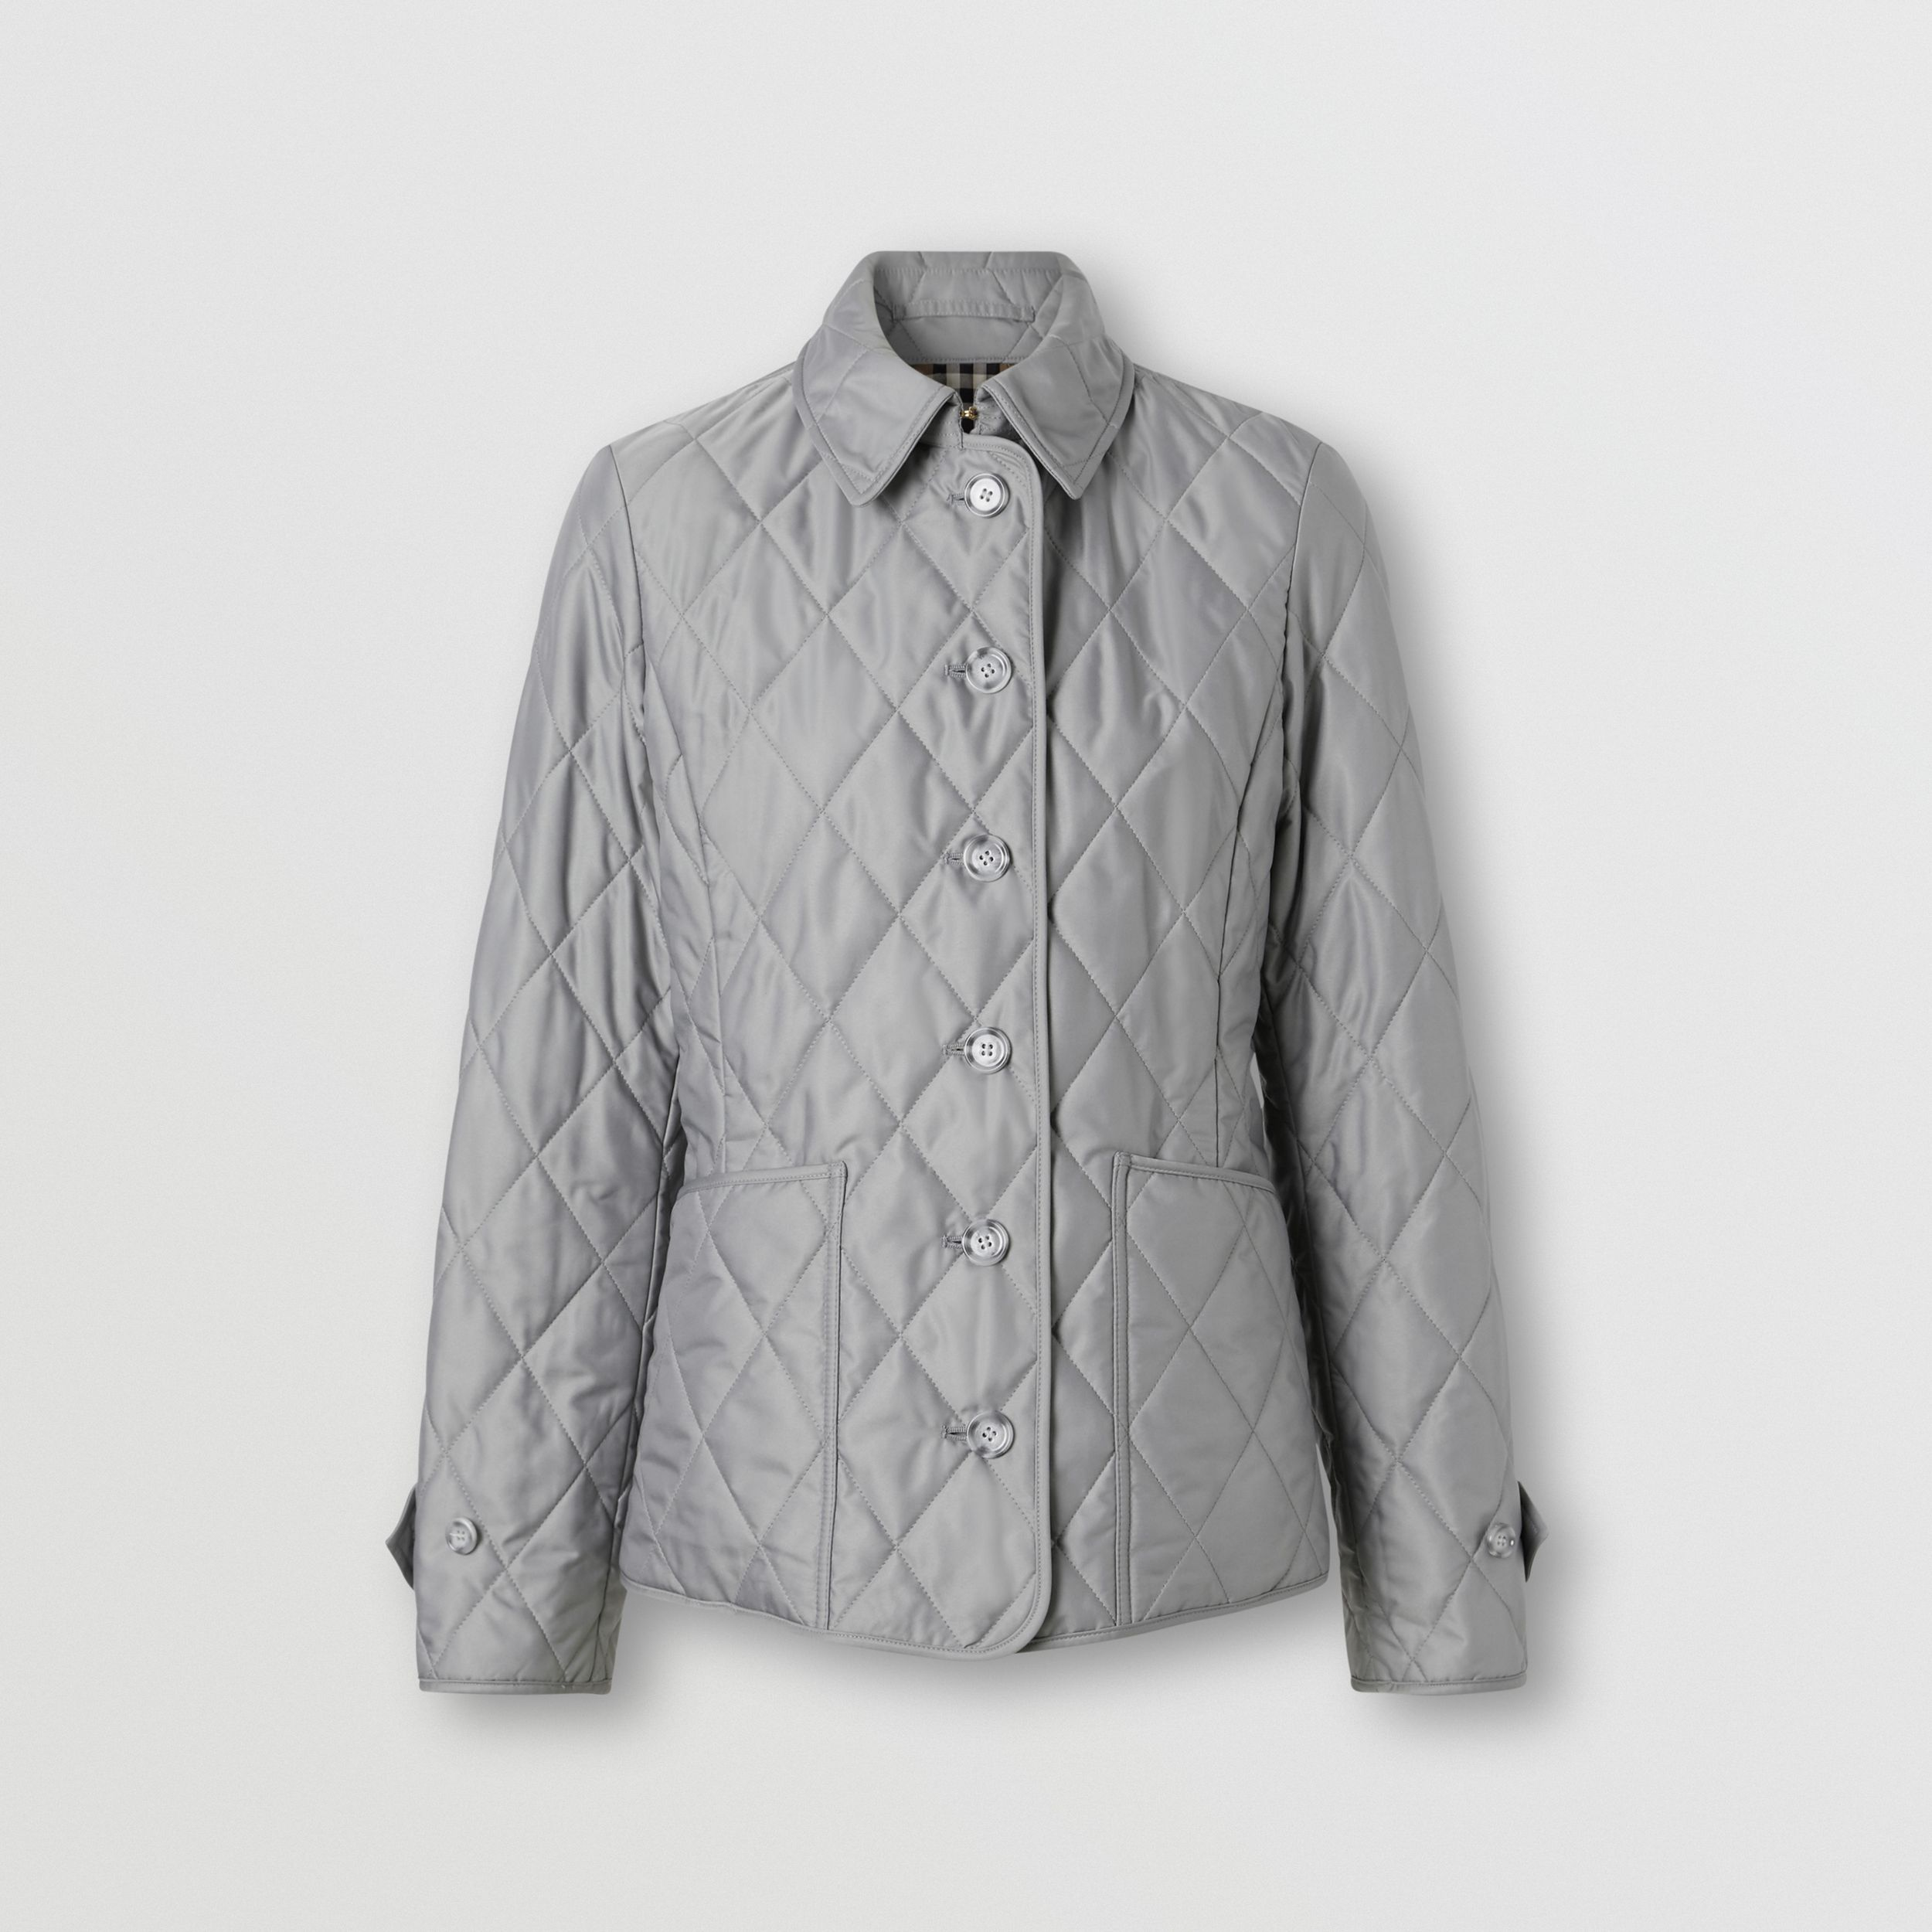 Diamond Quilted Thermoregulated Jacket in Mid Grey - Women | Burberry - 4